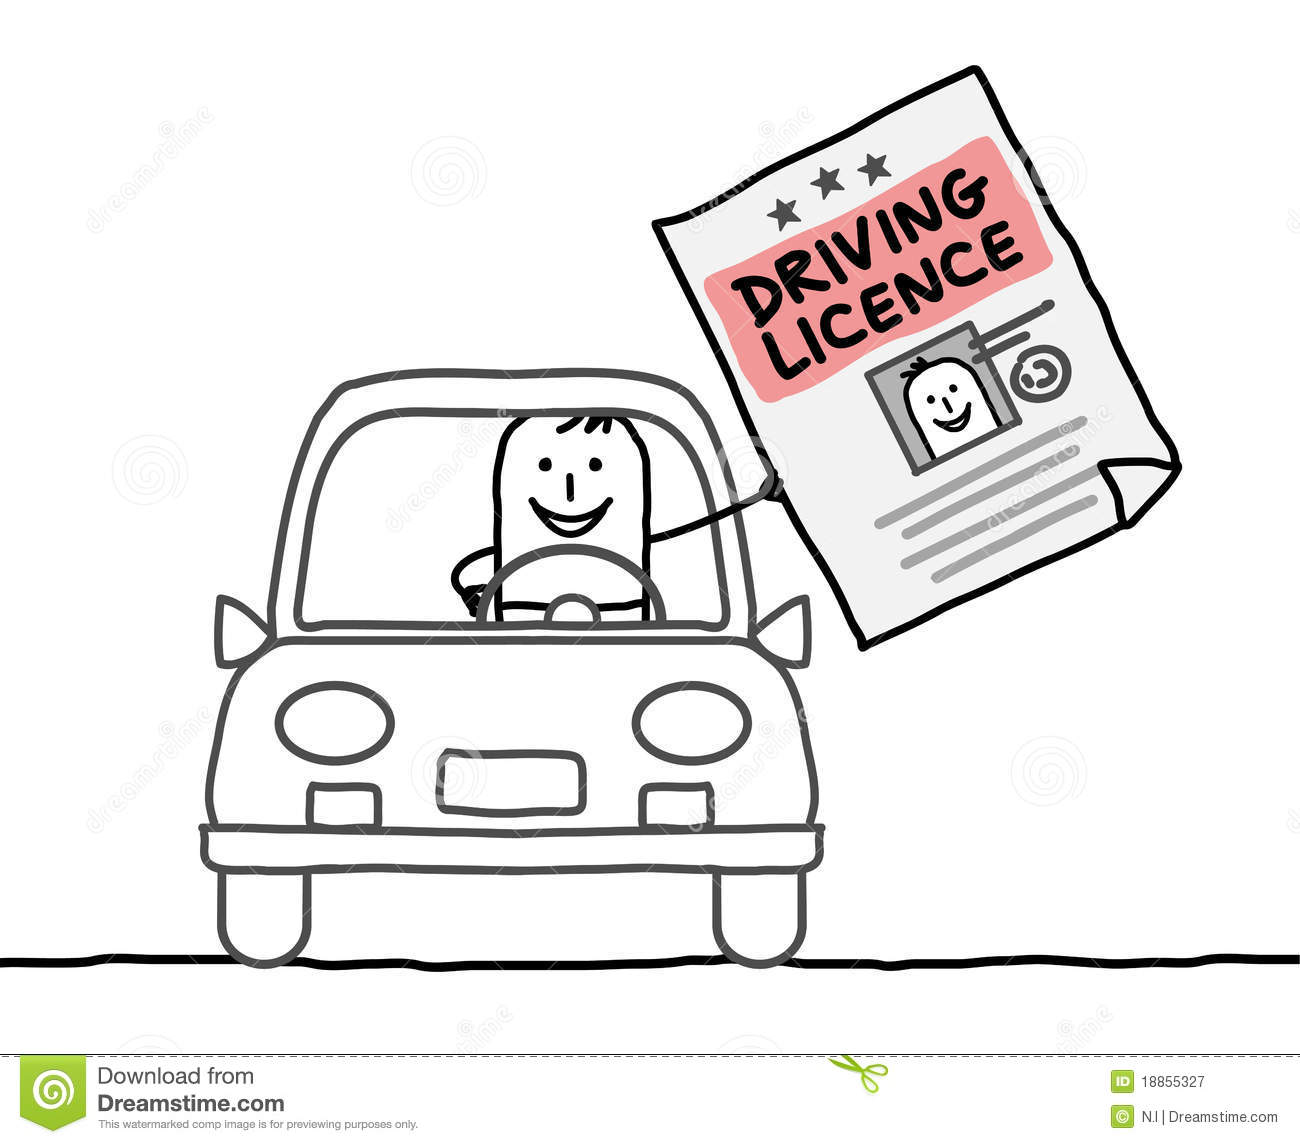 Man & driving licence stock vector. Illustration of